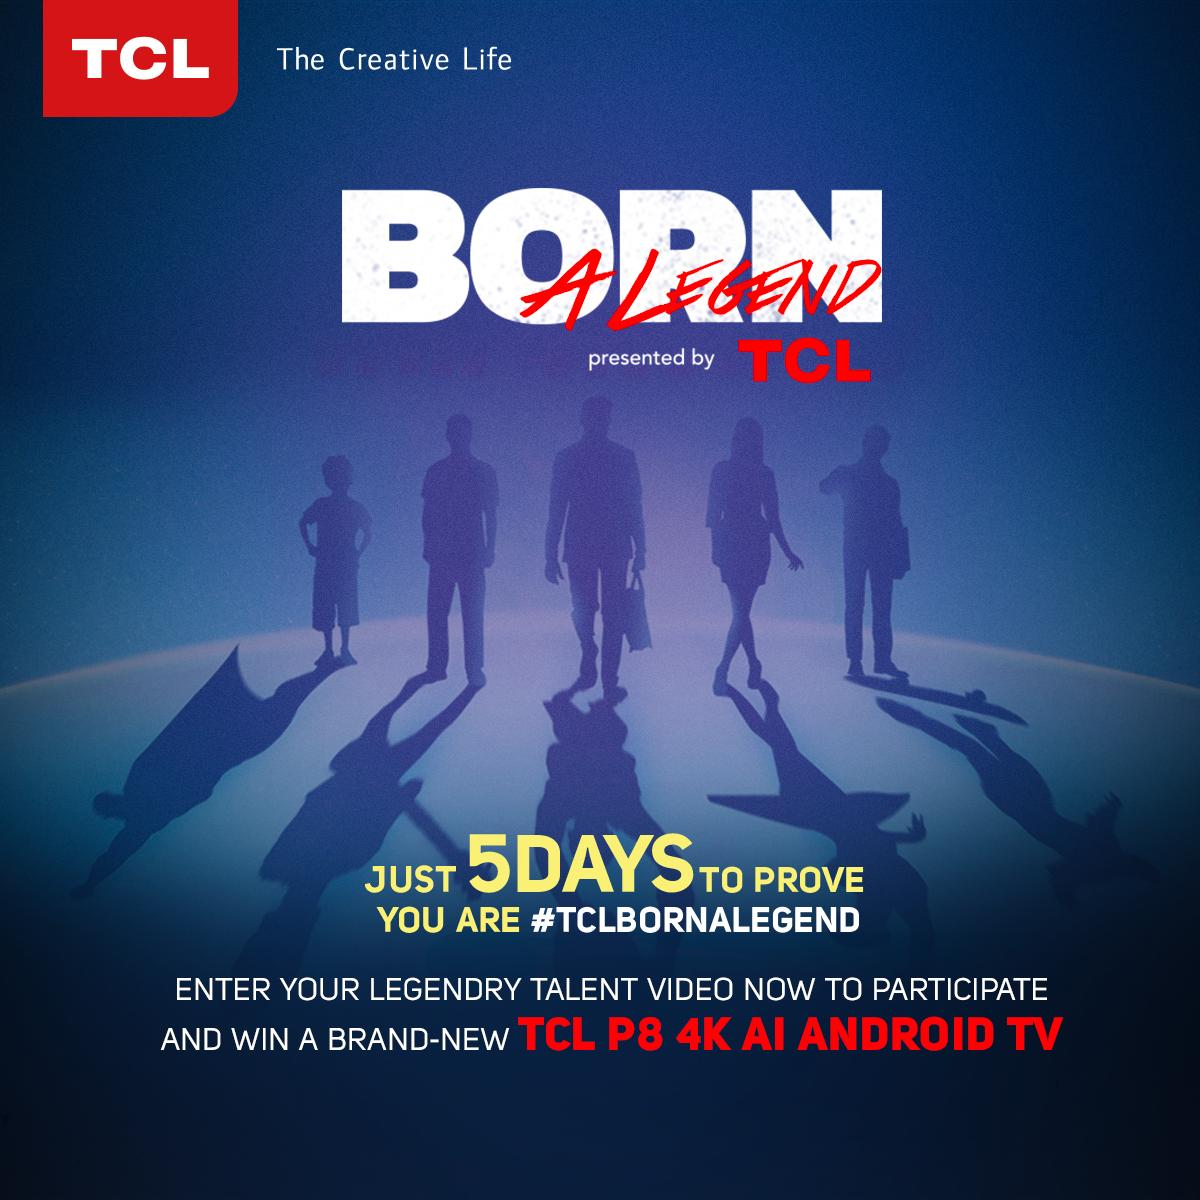 TCL India (@tcl_india) | Twitter